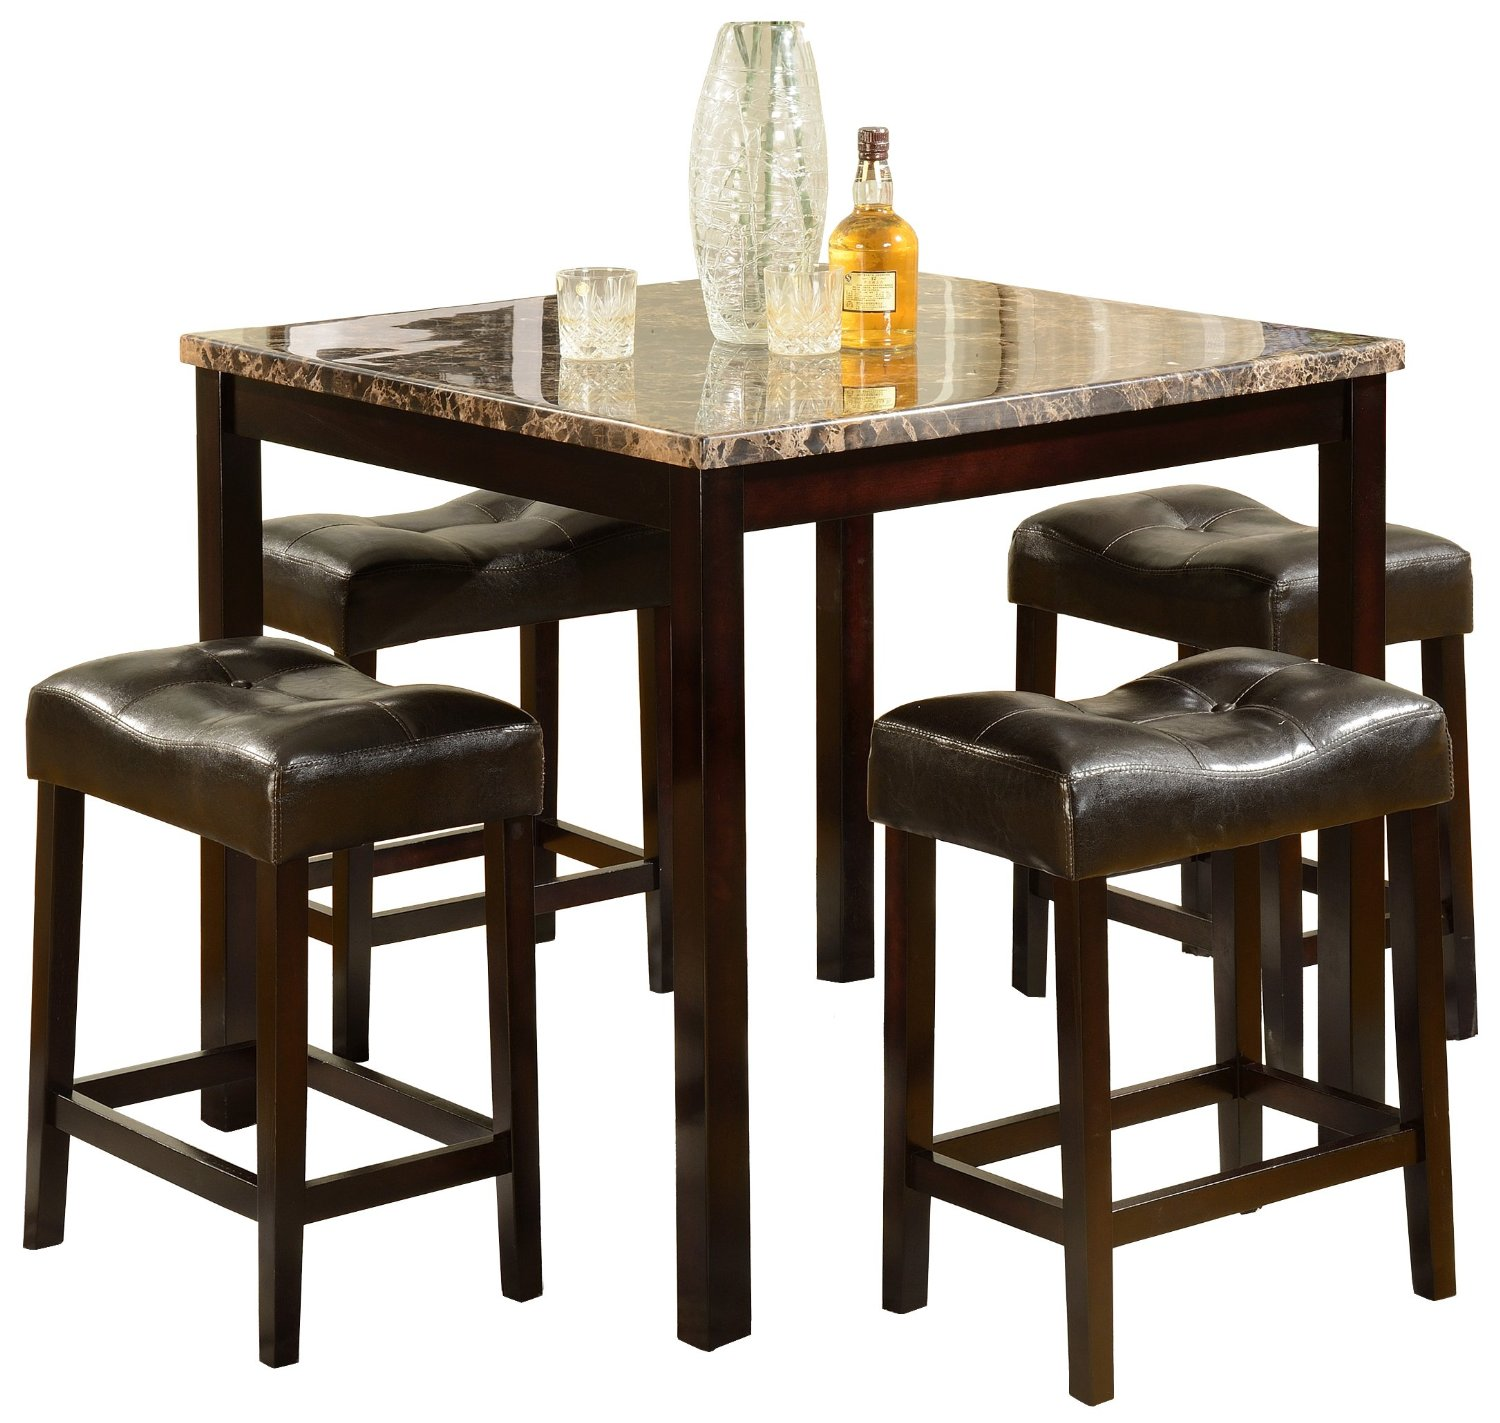 Square Marble Top Brown Polished Of High Table Sets With Four Chairs